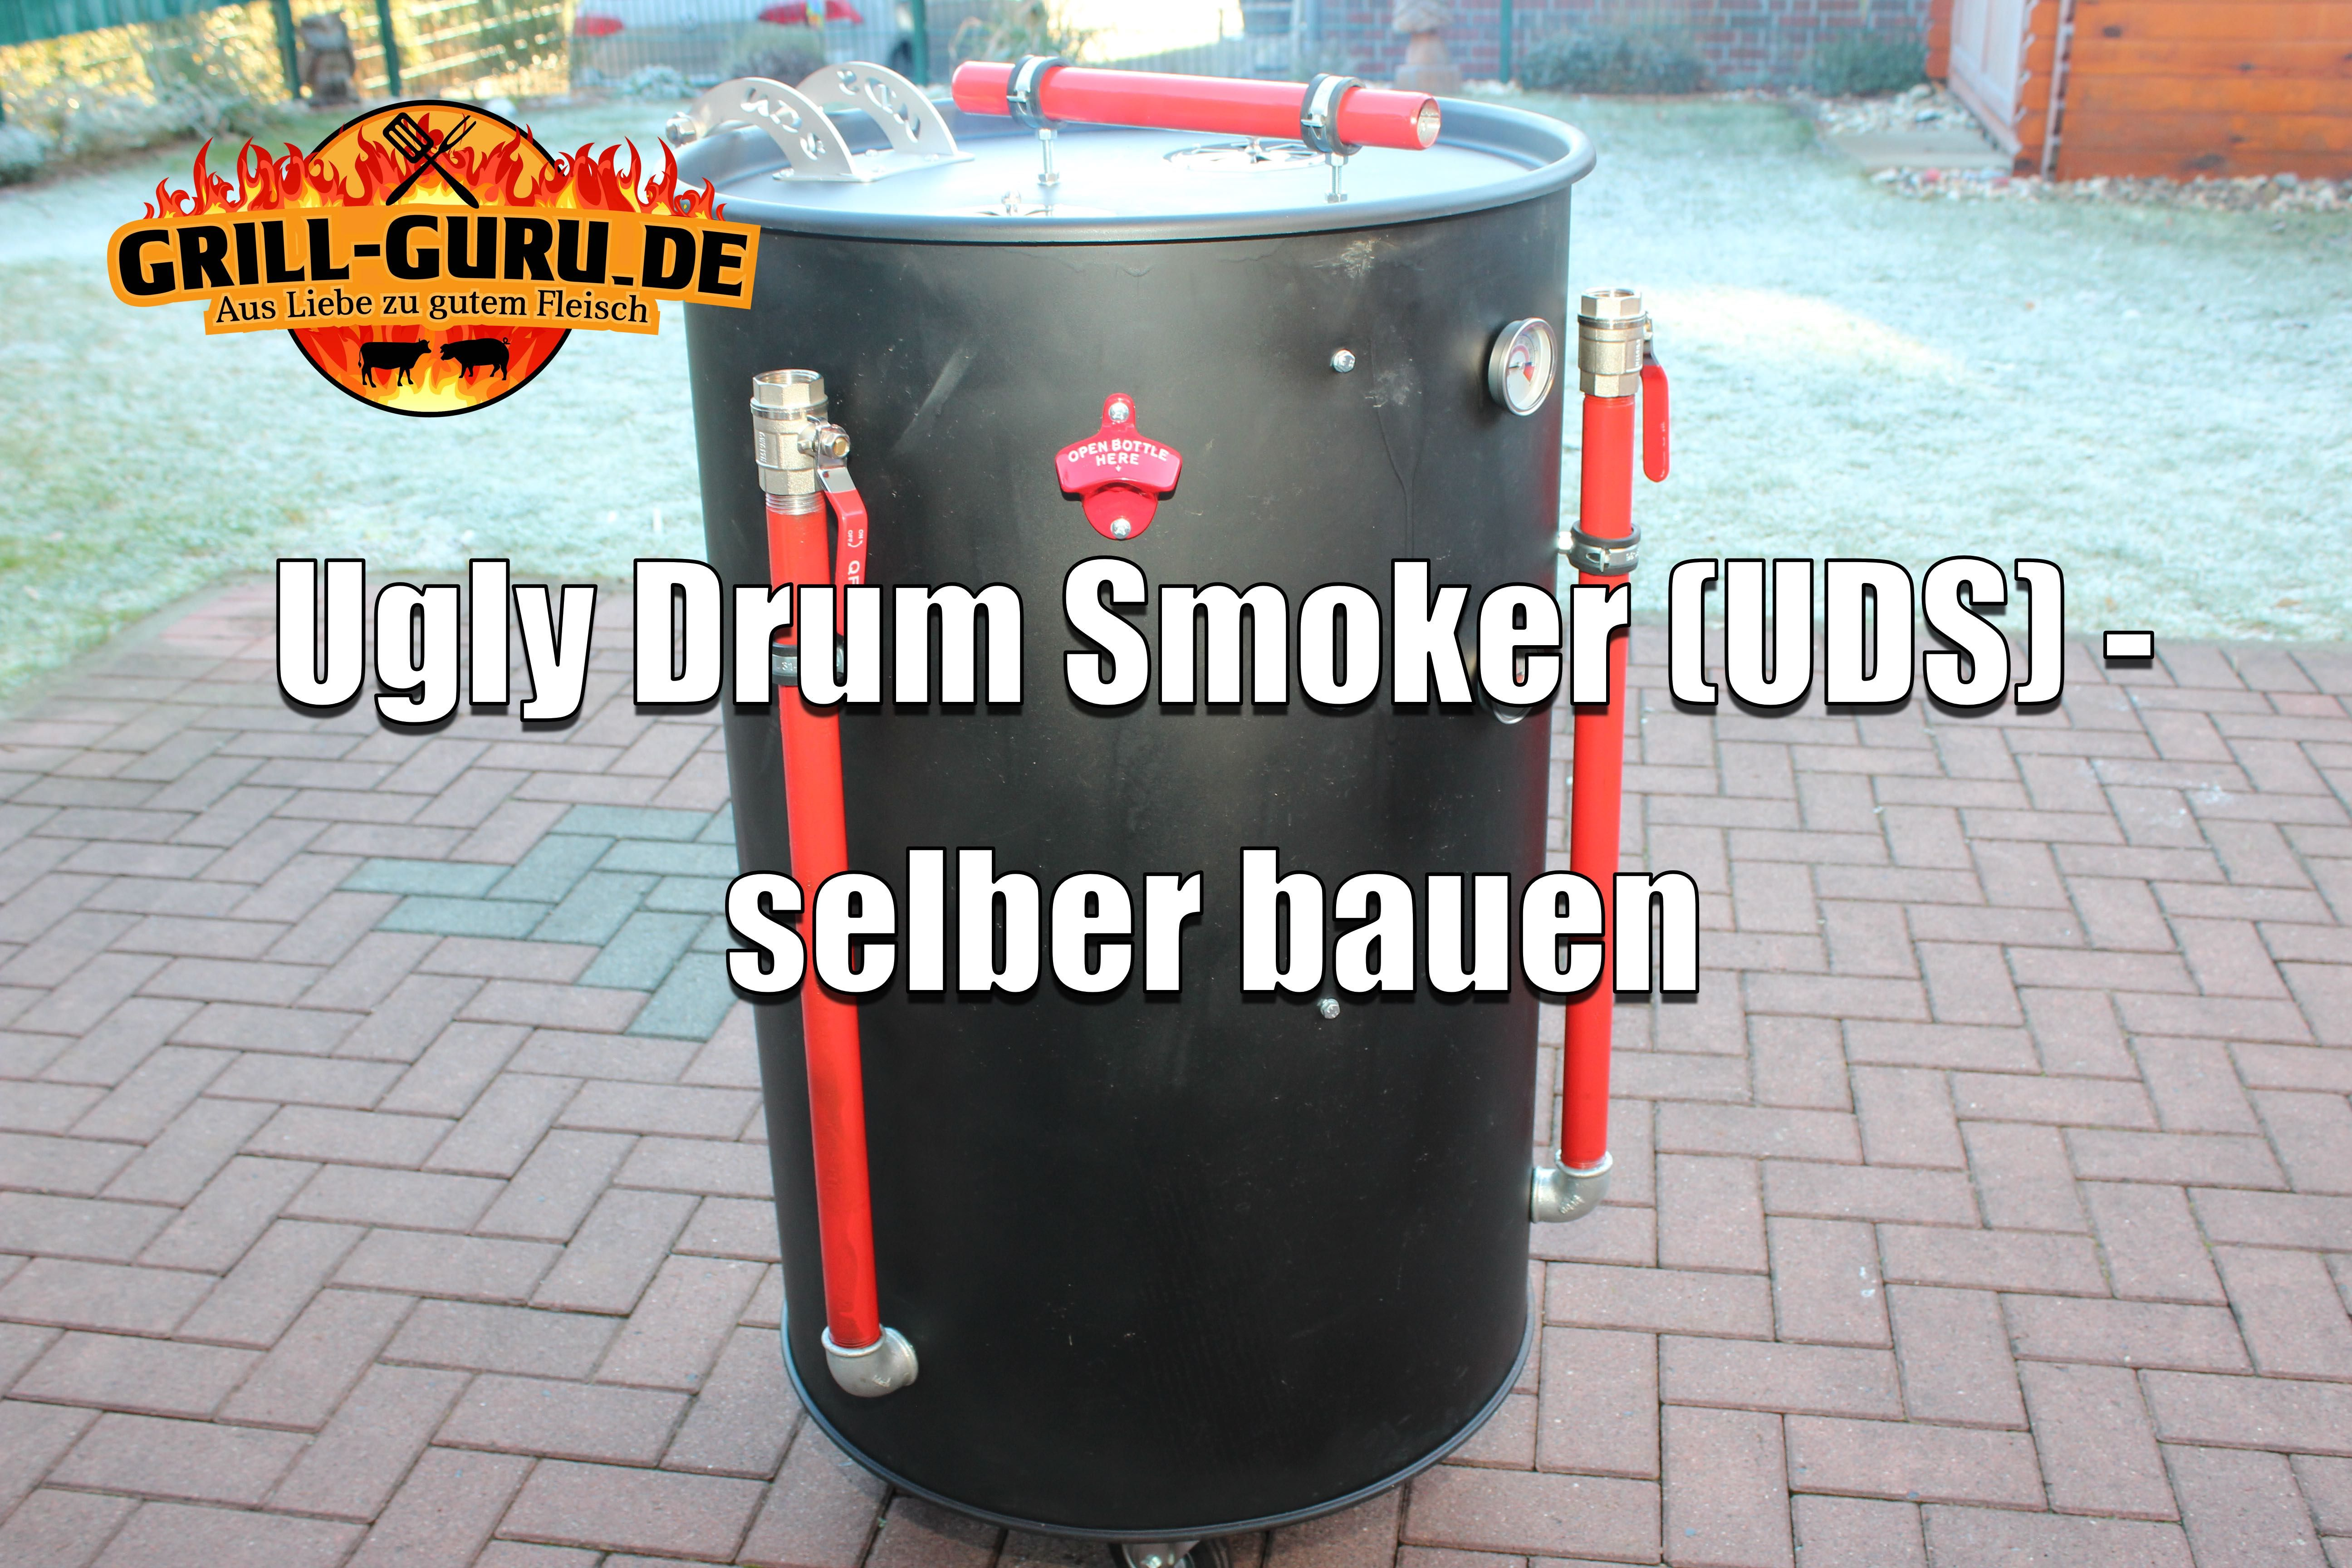 Ugly Drum Smoker - selber bauen | Ugly drum smoker, Drum smoker and ...